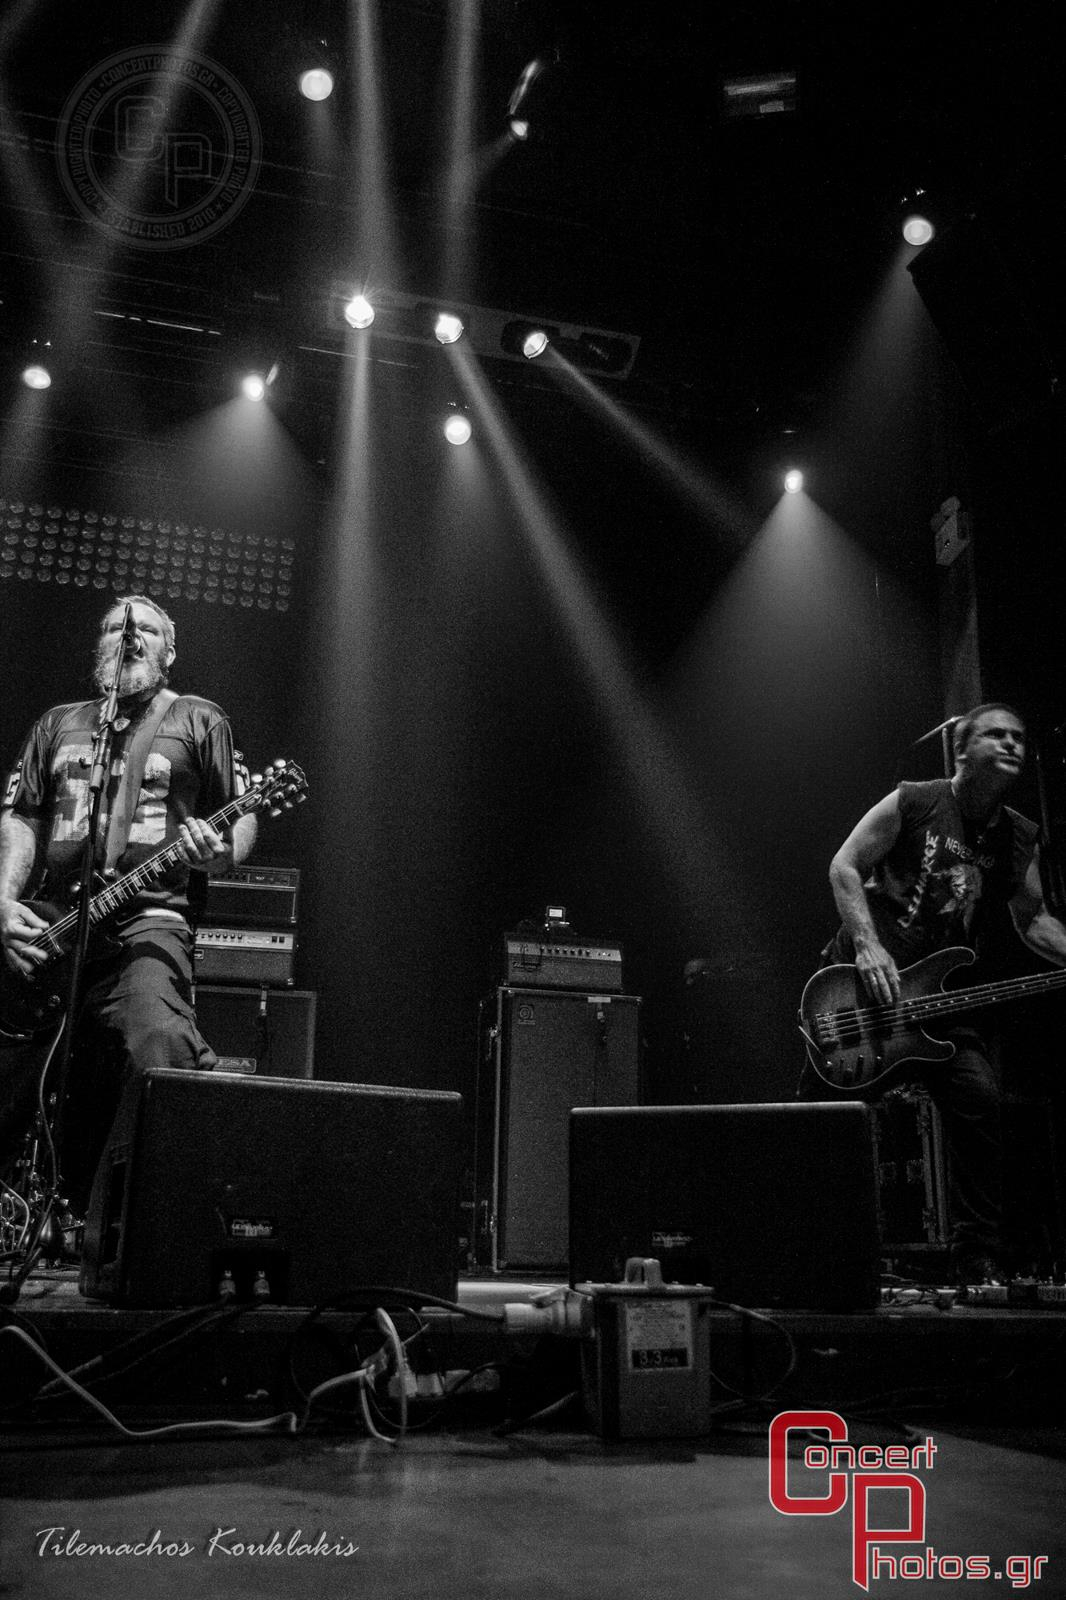 Neurosis-Neurosis photographer:  - concertphotos_20140707_23_56_35-6